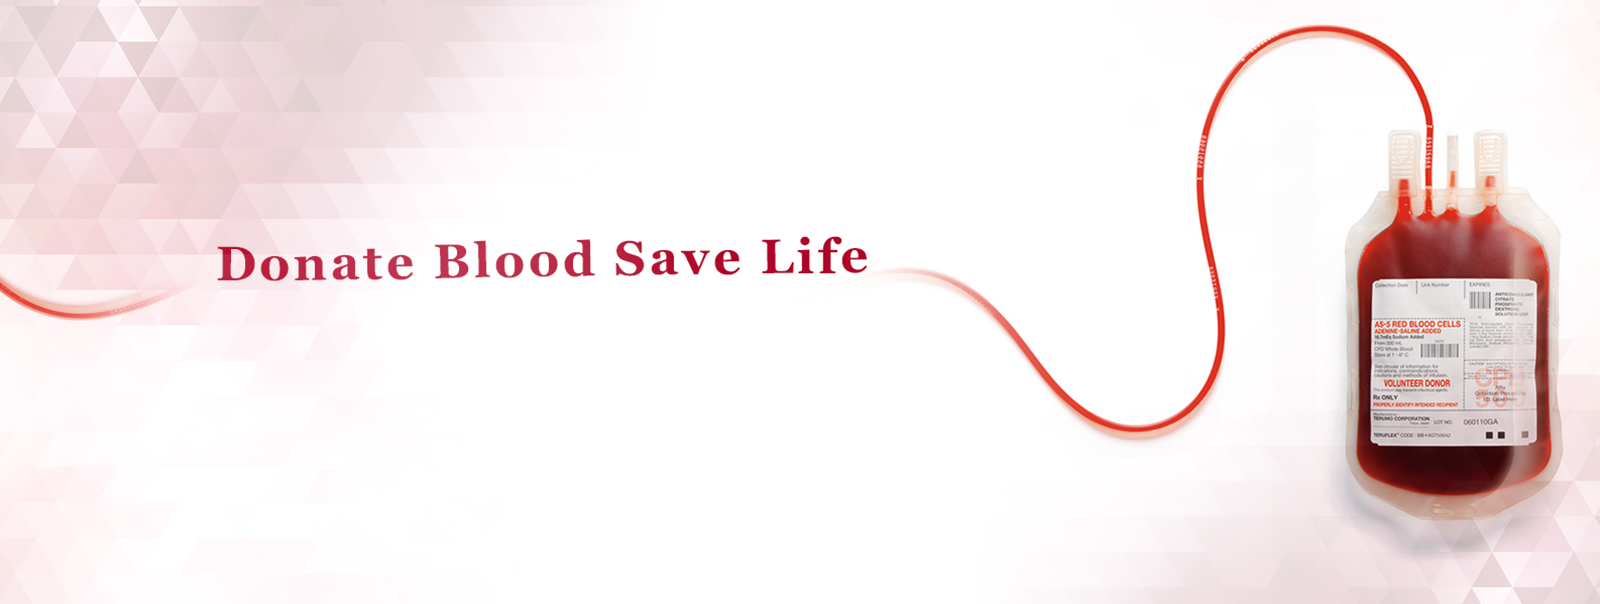 donate-blood-banner-11